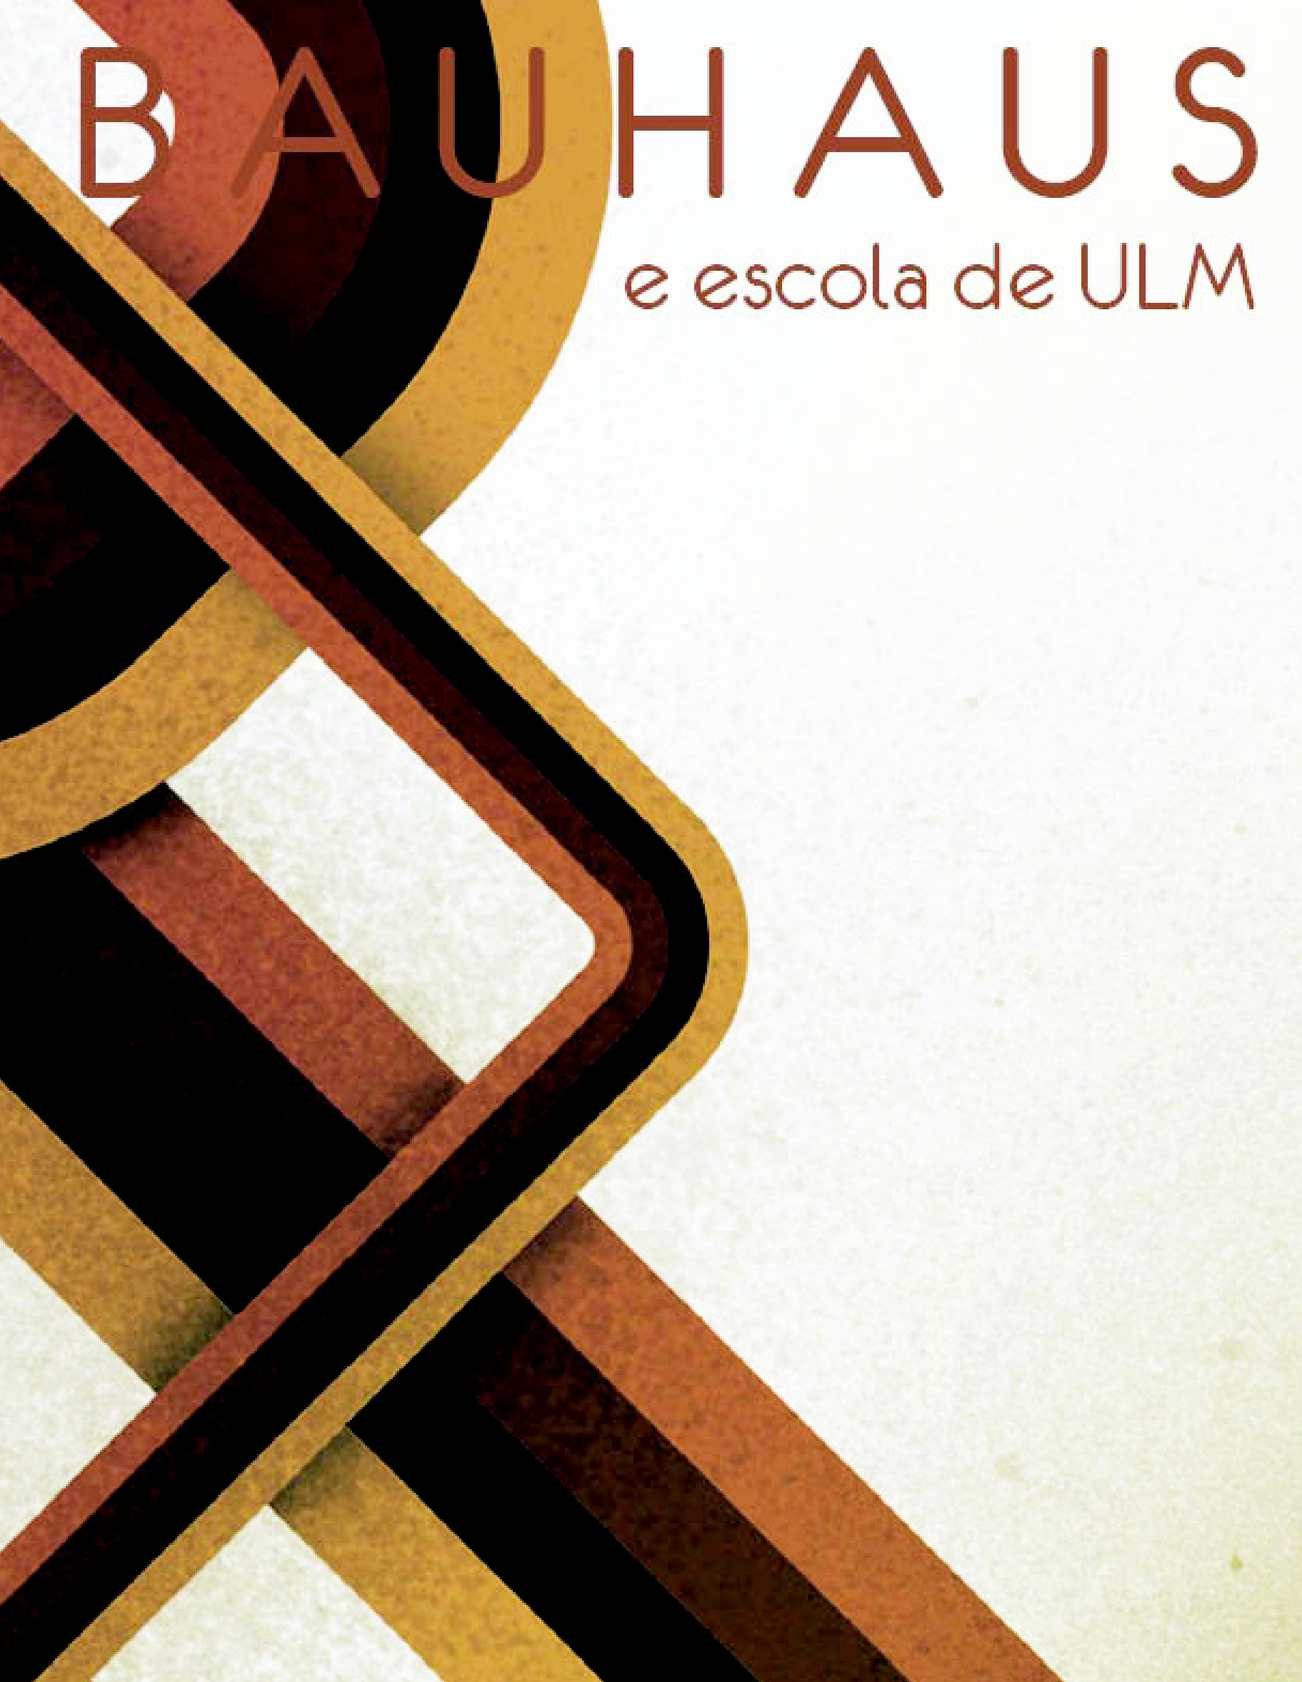 Feuerschale Quiero Bauhaus Ulm Beautiful Book Of The Month Between Chairs At Ulm And